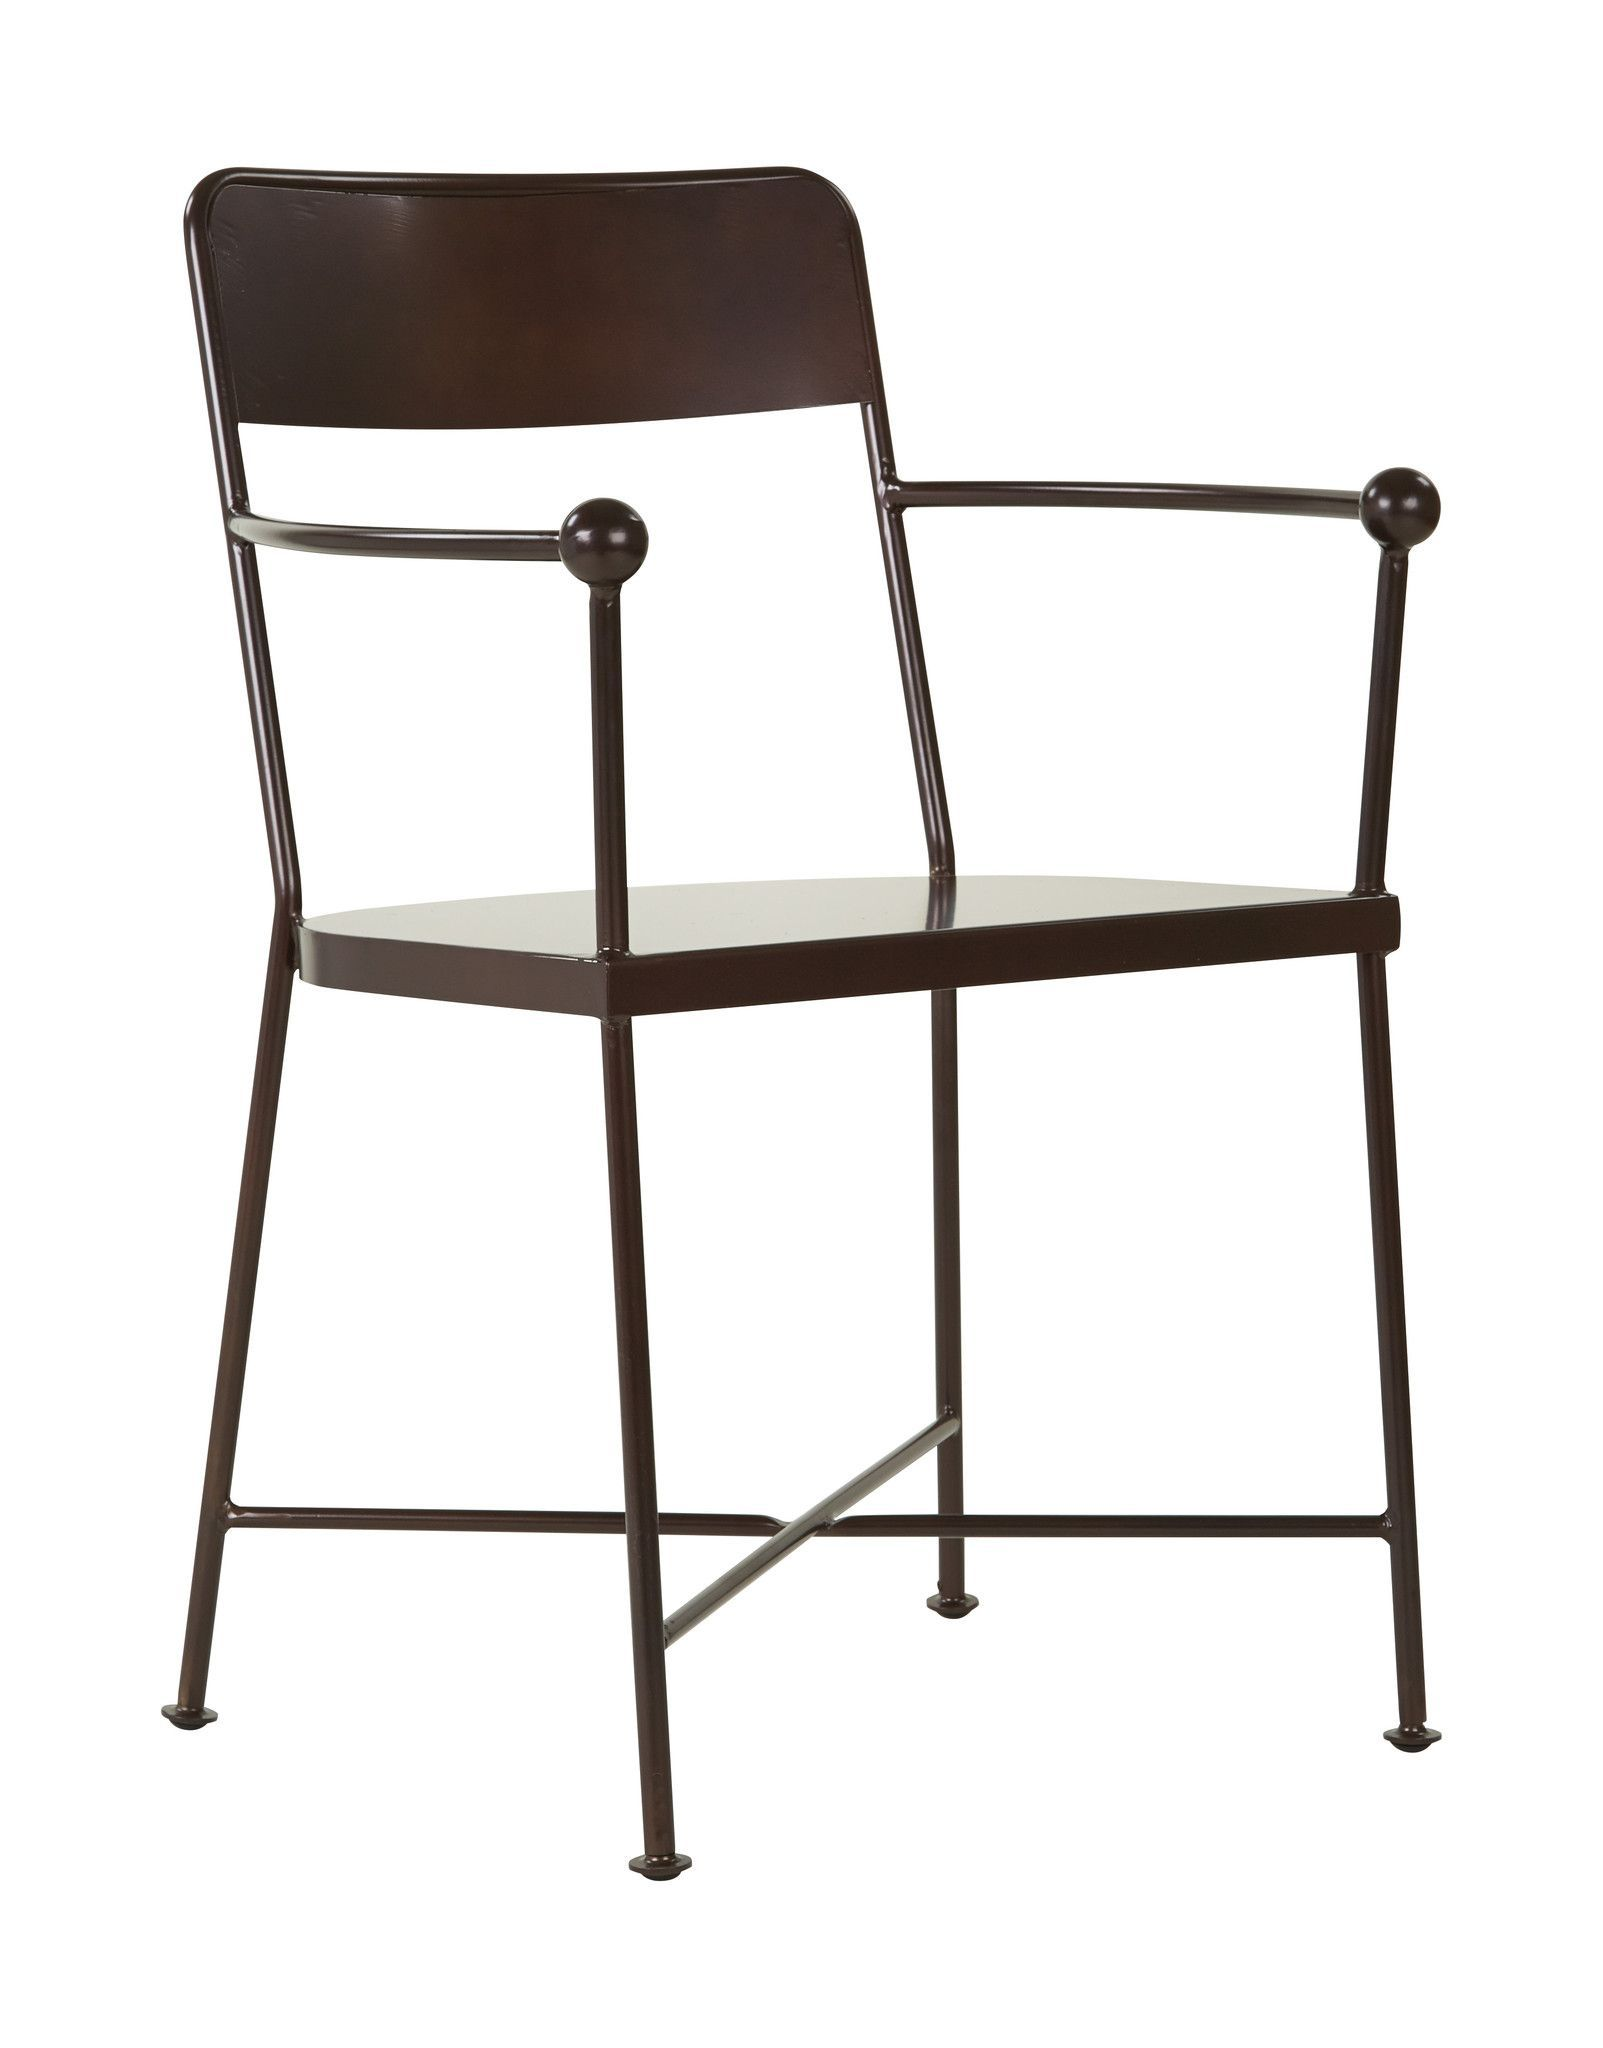 Osp designs westport metal chair in copper finish fully assembled